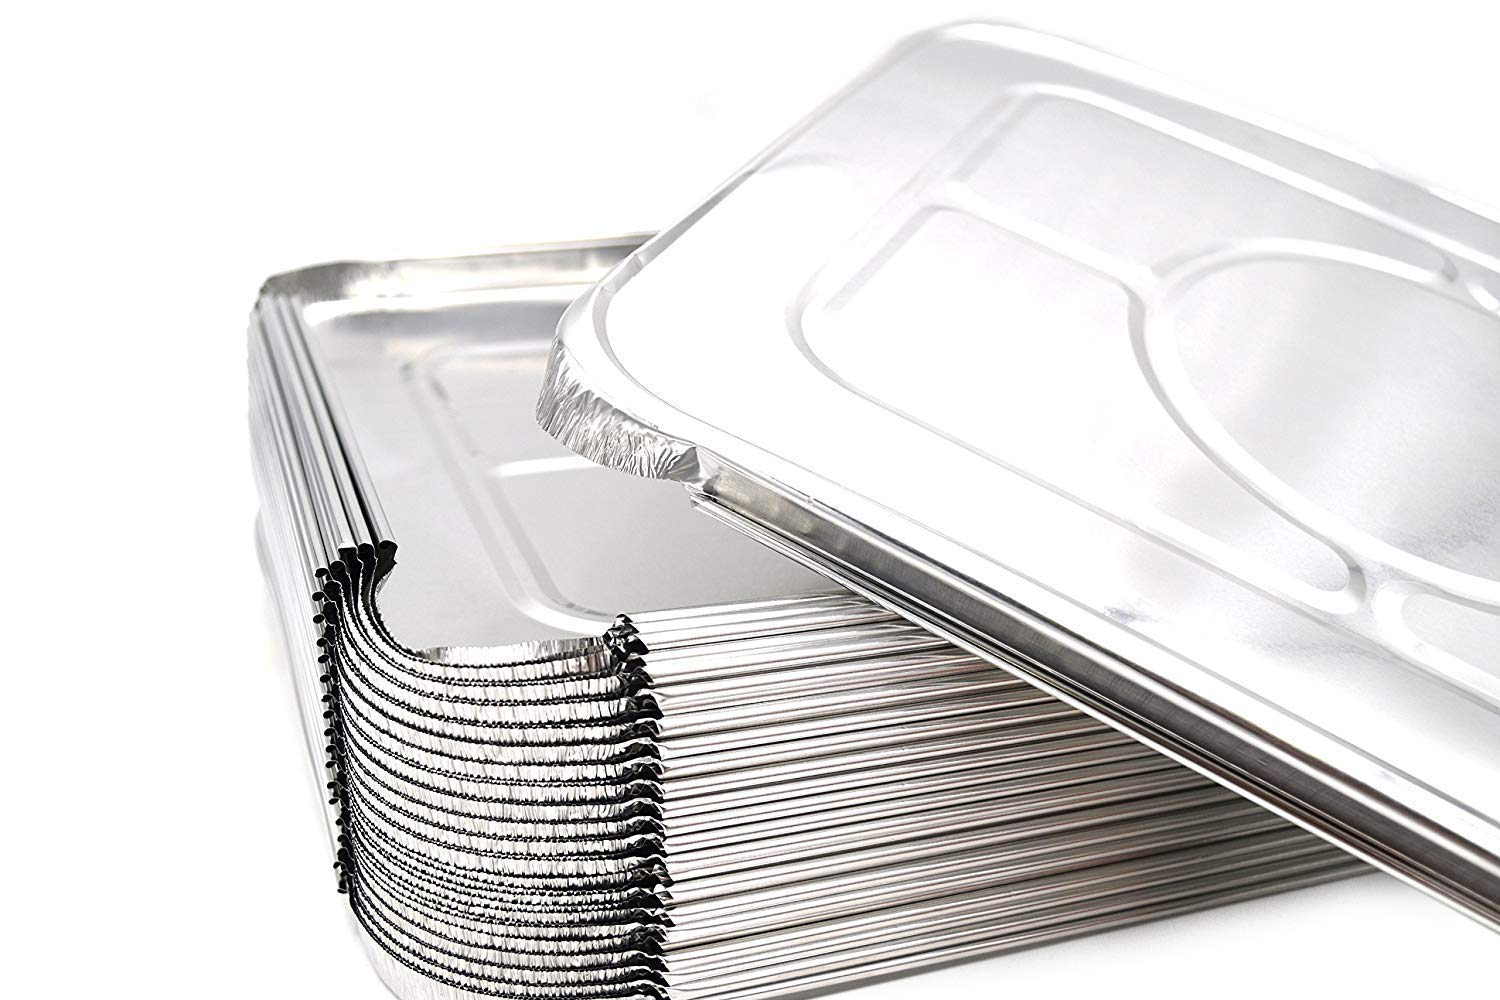 """Premium Lids for Lasagna Pans 14 x 10 x 3/"""" Heavy Duty l 26 Gauge l Top Baker/'s Choice Disposable Aluminum Foil for Roasting Potluck Reheating Catering Party BBQ Baking 30 Pack Fig /& Leaf"""